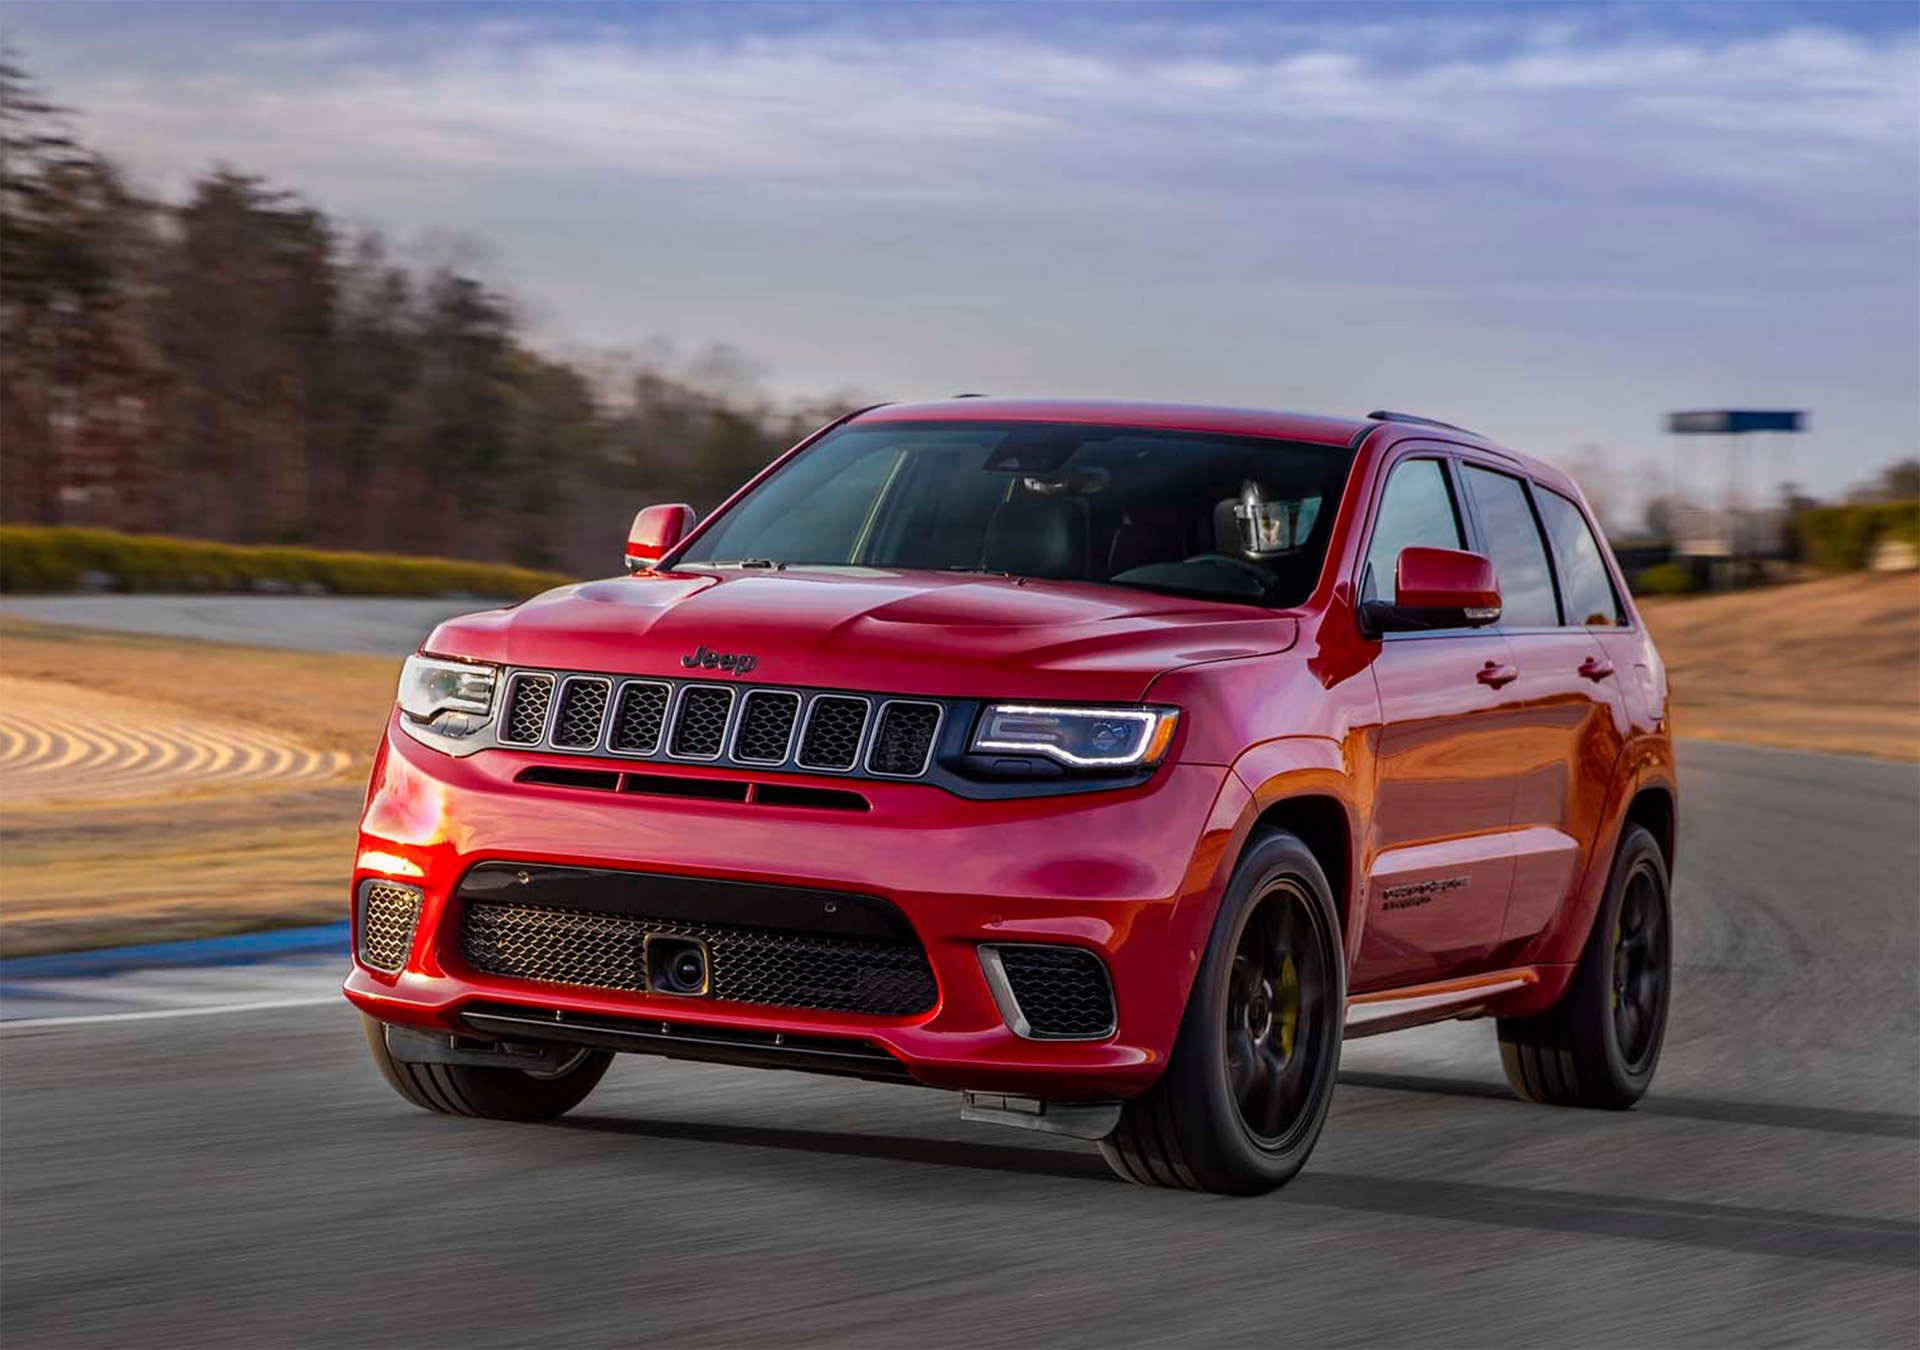 2018 Jeep Cherokee Trackhawk: Hellcat All the Things!